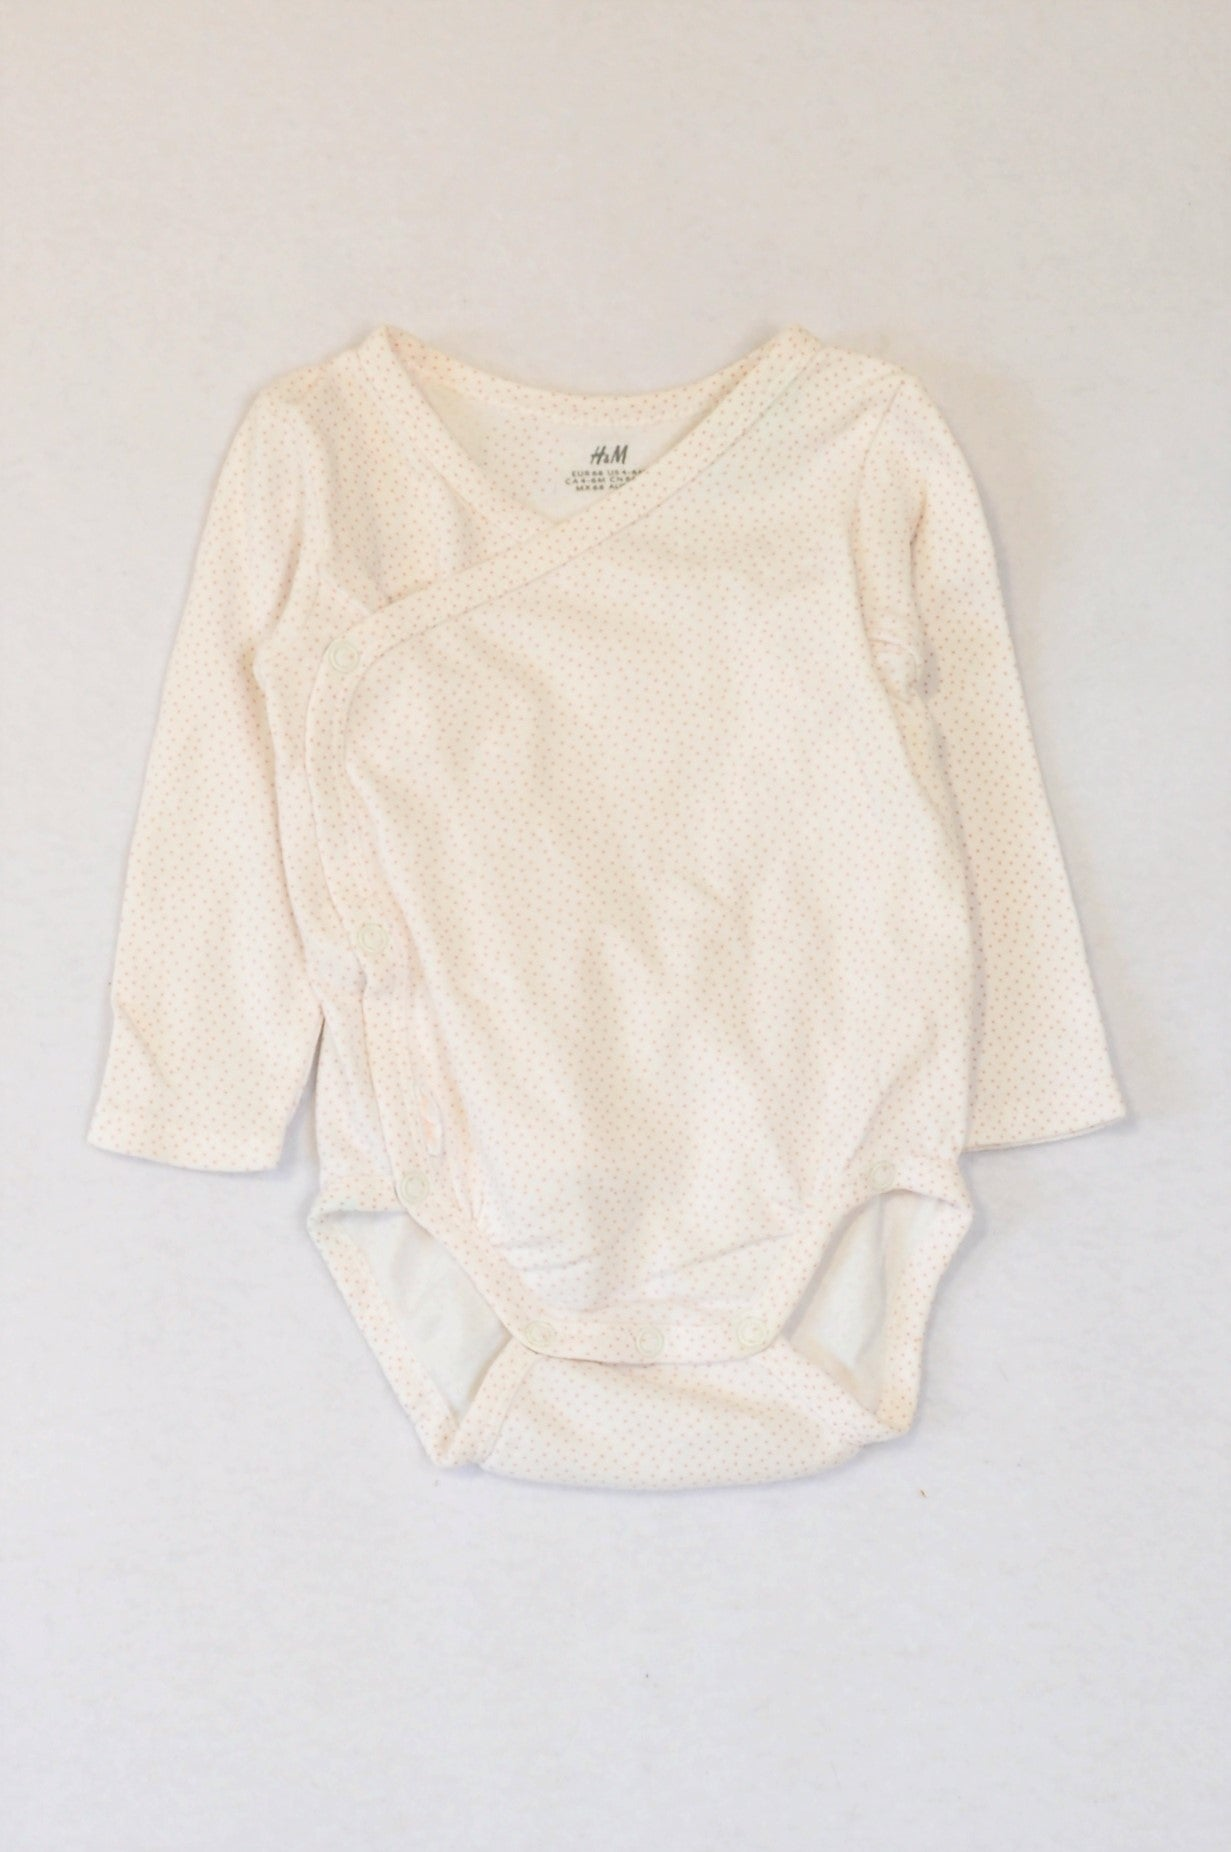 H&M White & Dusty Pink Dotty Long Sleeve Baby Grow Girls 3-6 months